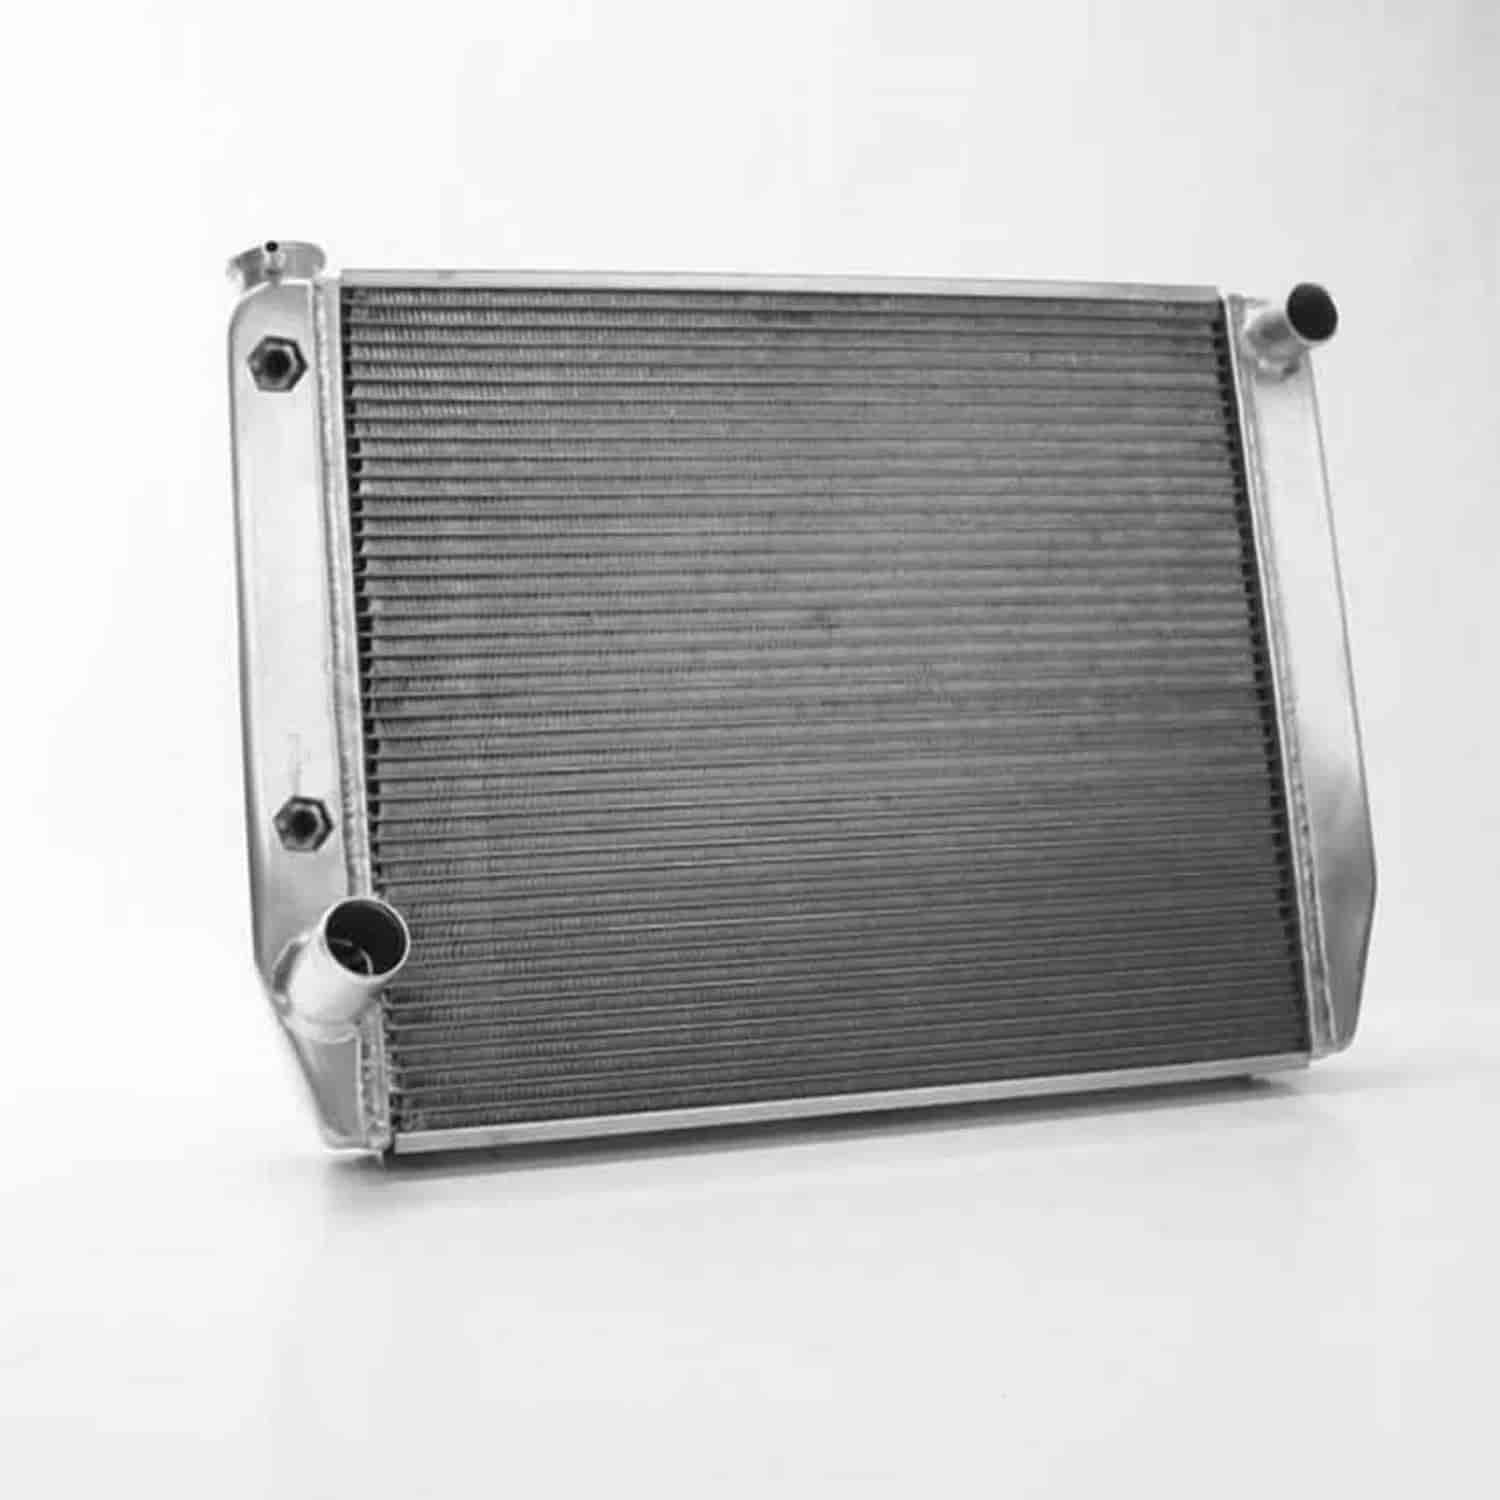 Griffin Radiators 1-56222-TS